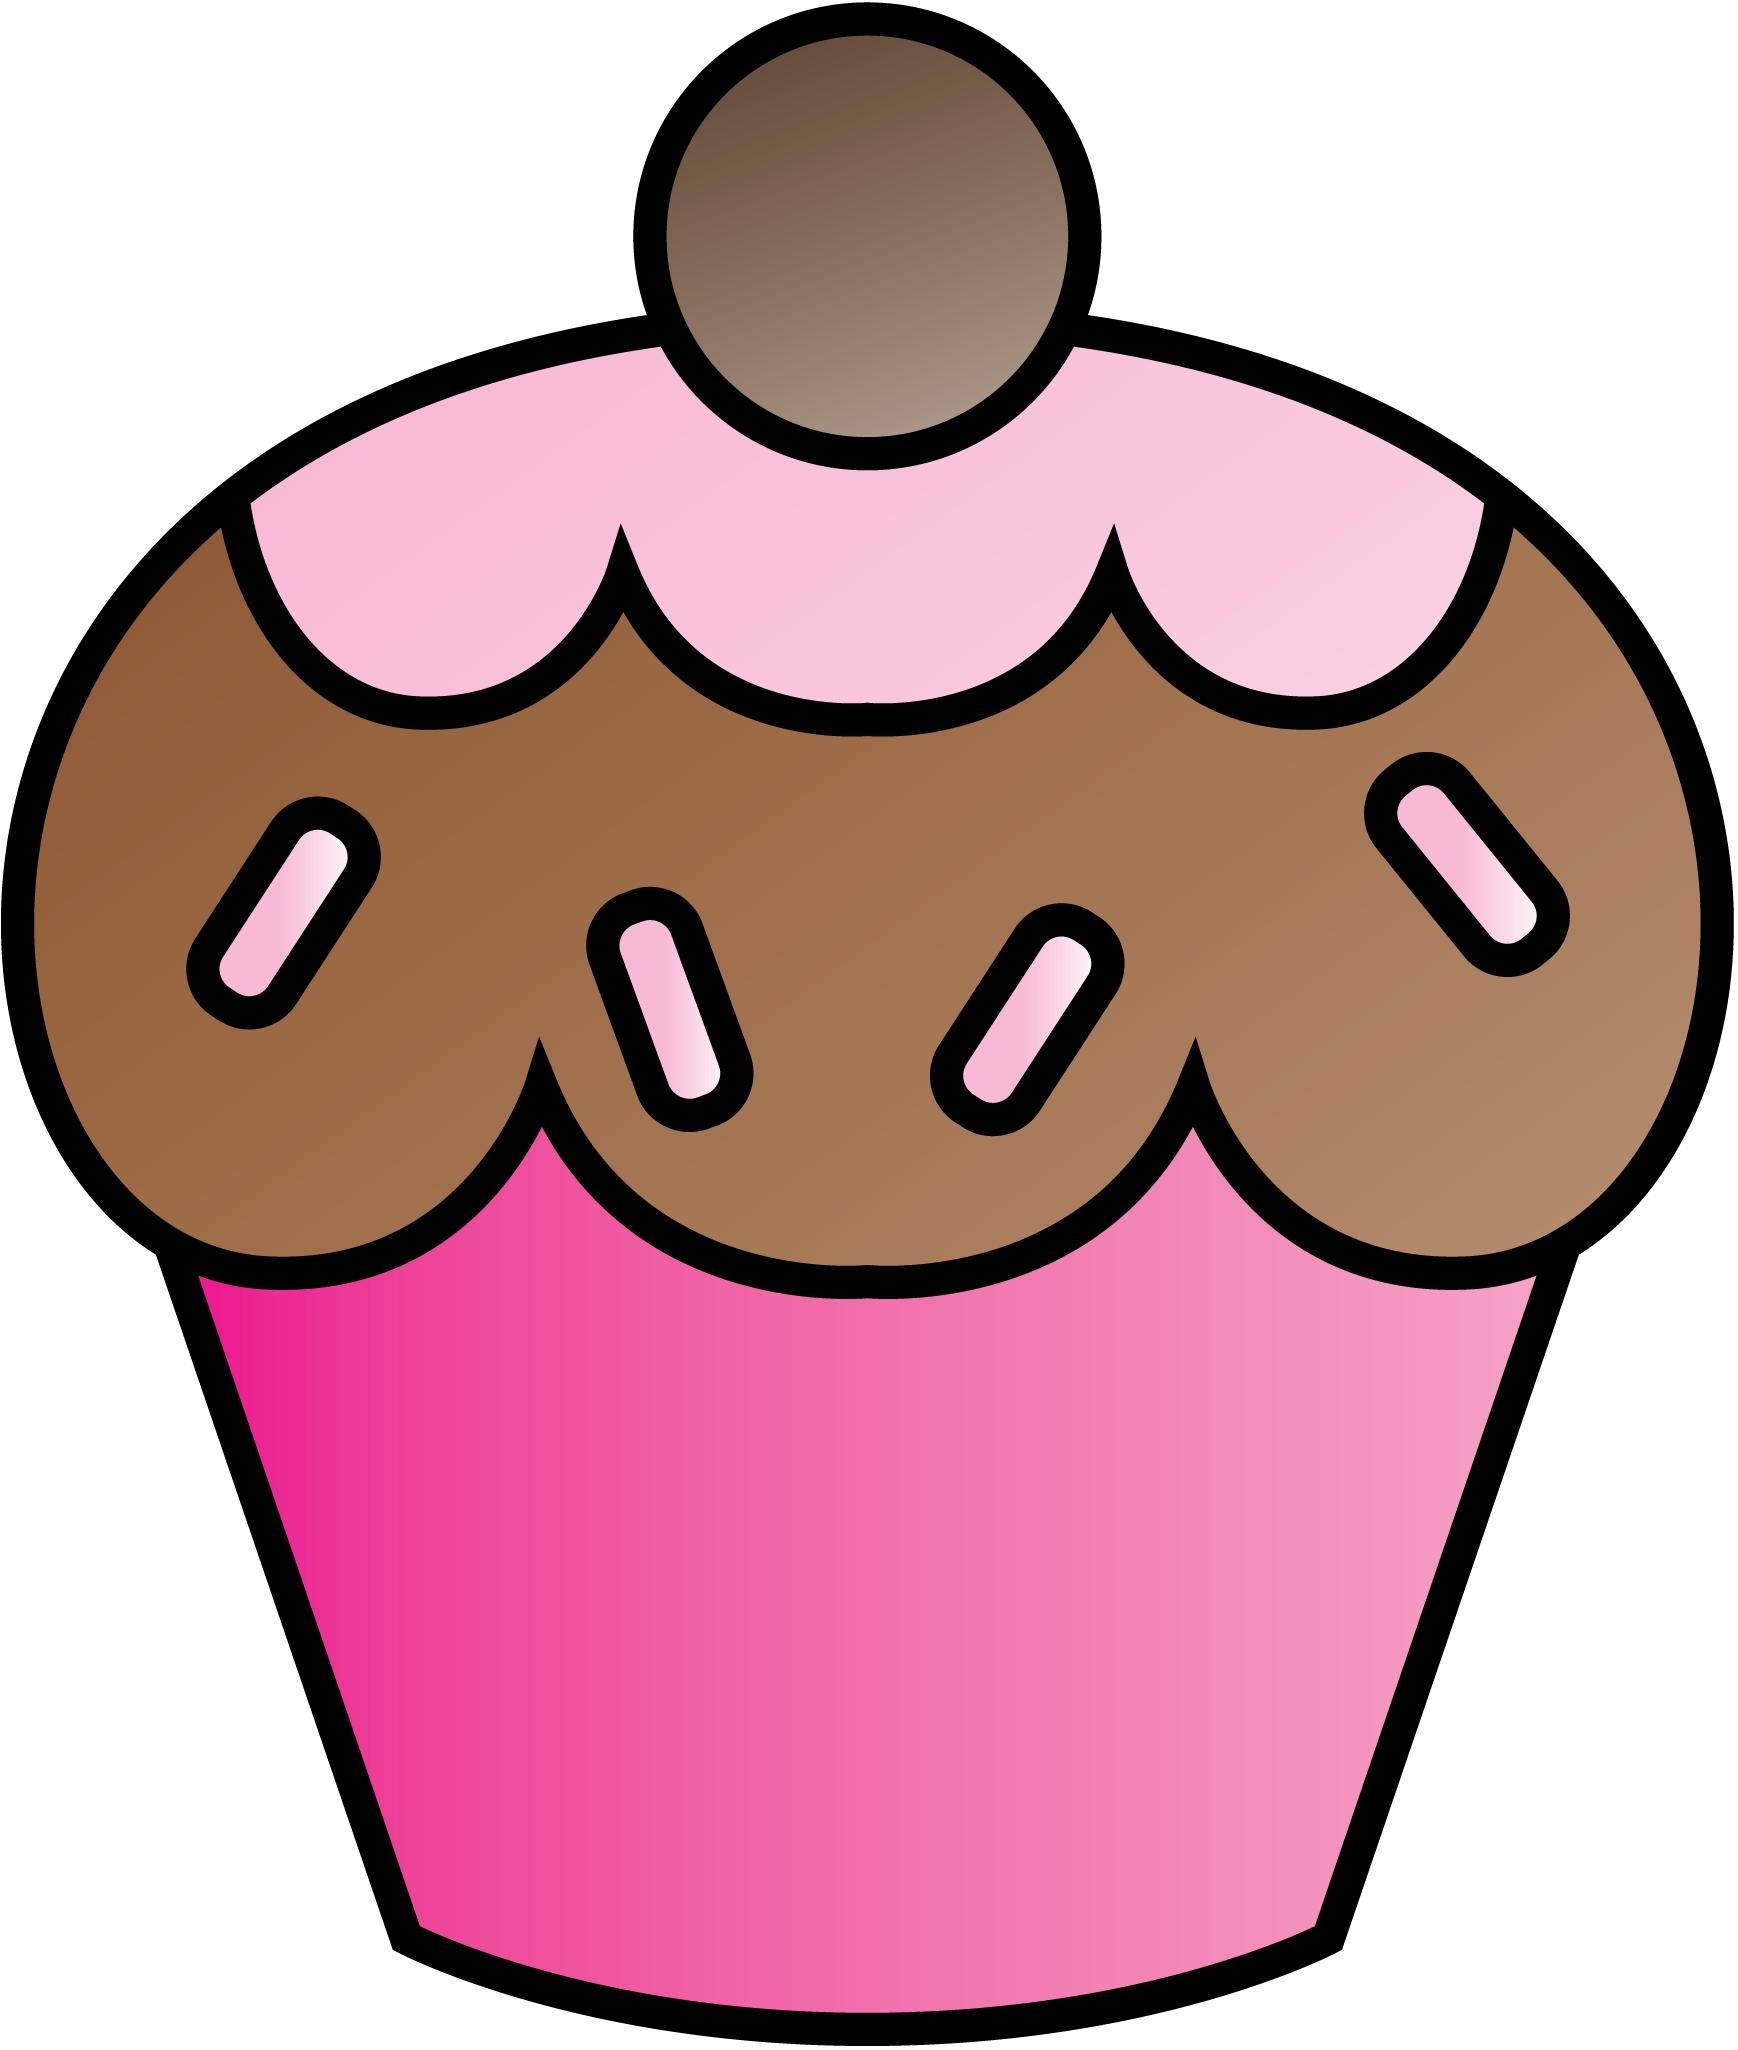 Cute freebie revidevi wordpress. Clipart cupcake owl